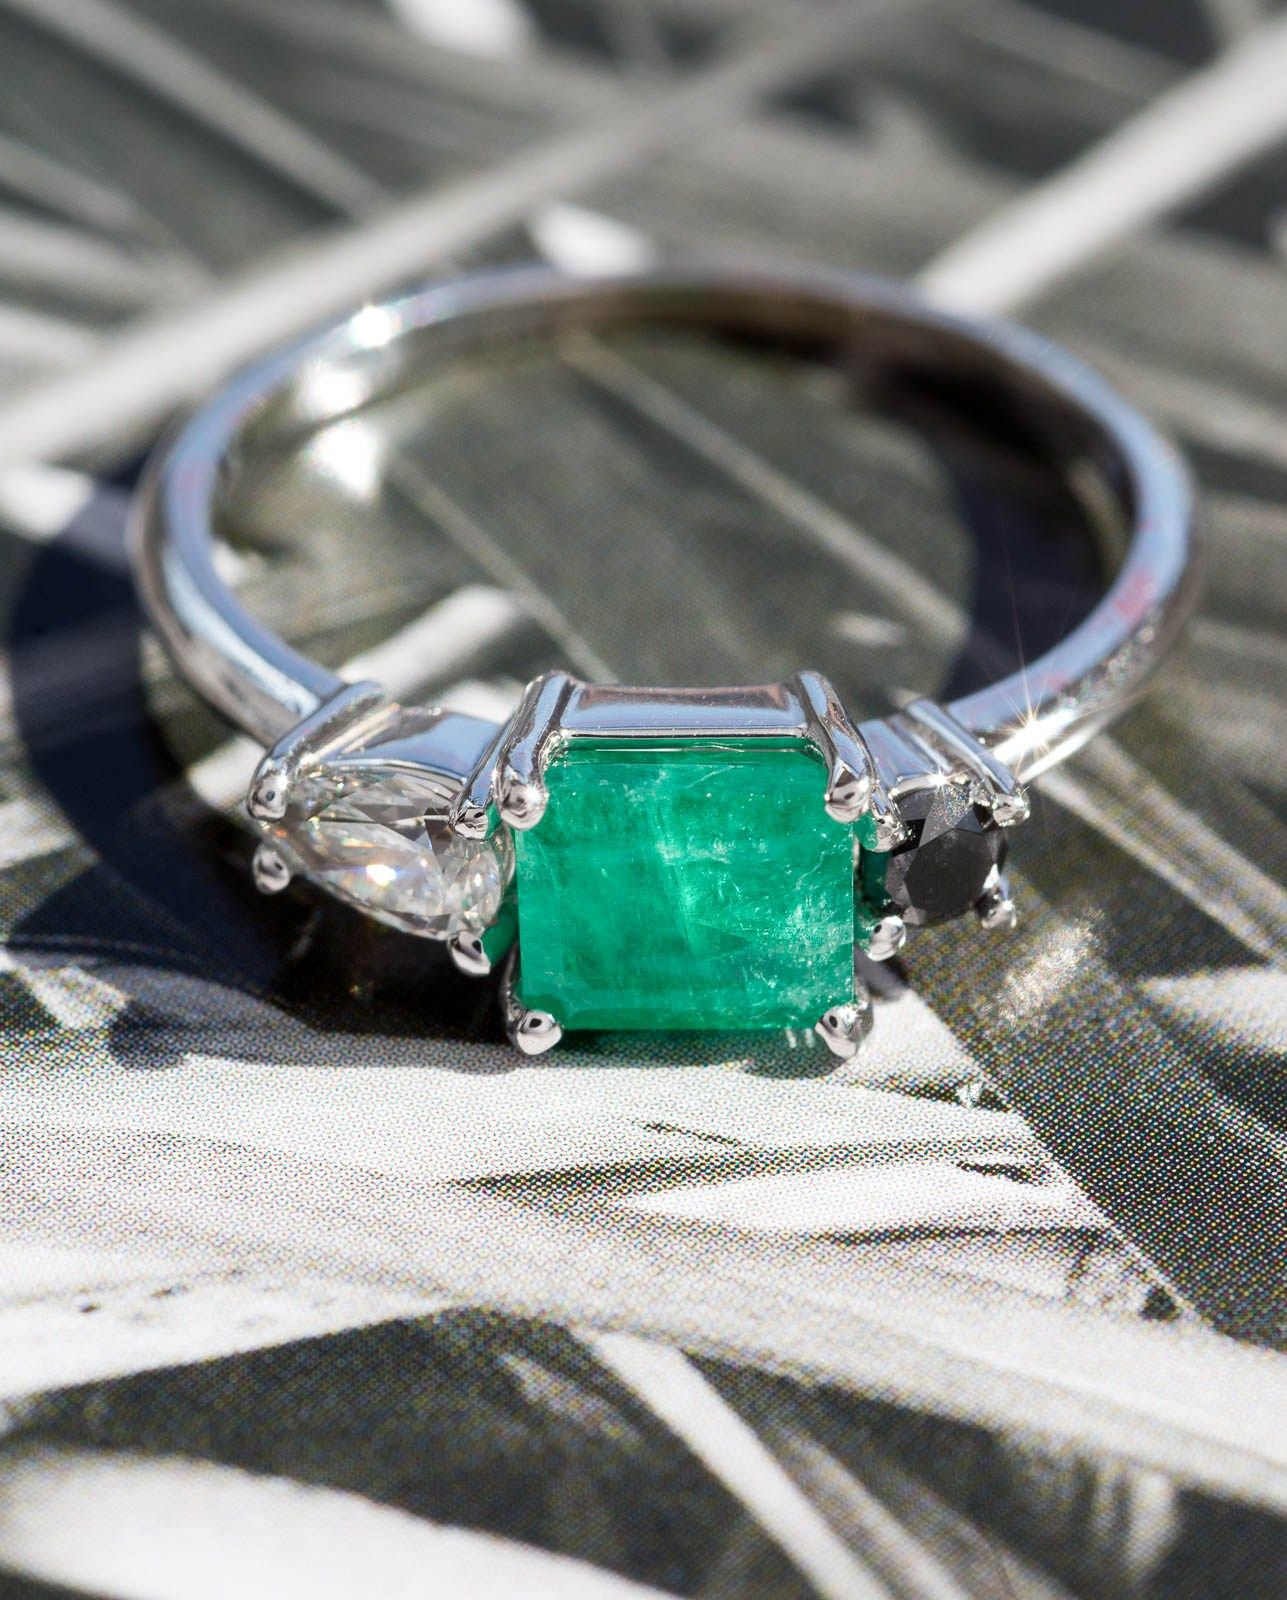 This Custom Emerald, Black and White Diamond Ring features  a crazy-unique, vintage emerald, complemented by ethical white and black diamonds, forming a design that fits the wearer's sporty yet elegant personality and style perfectly.